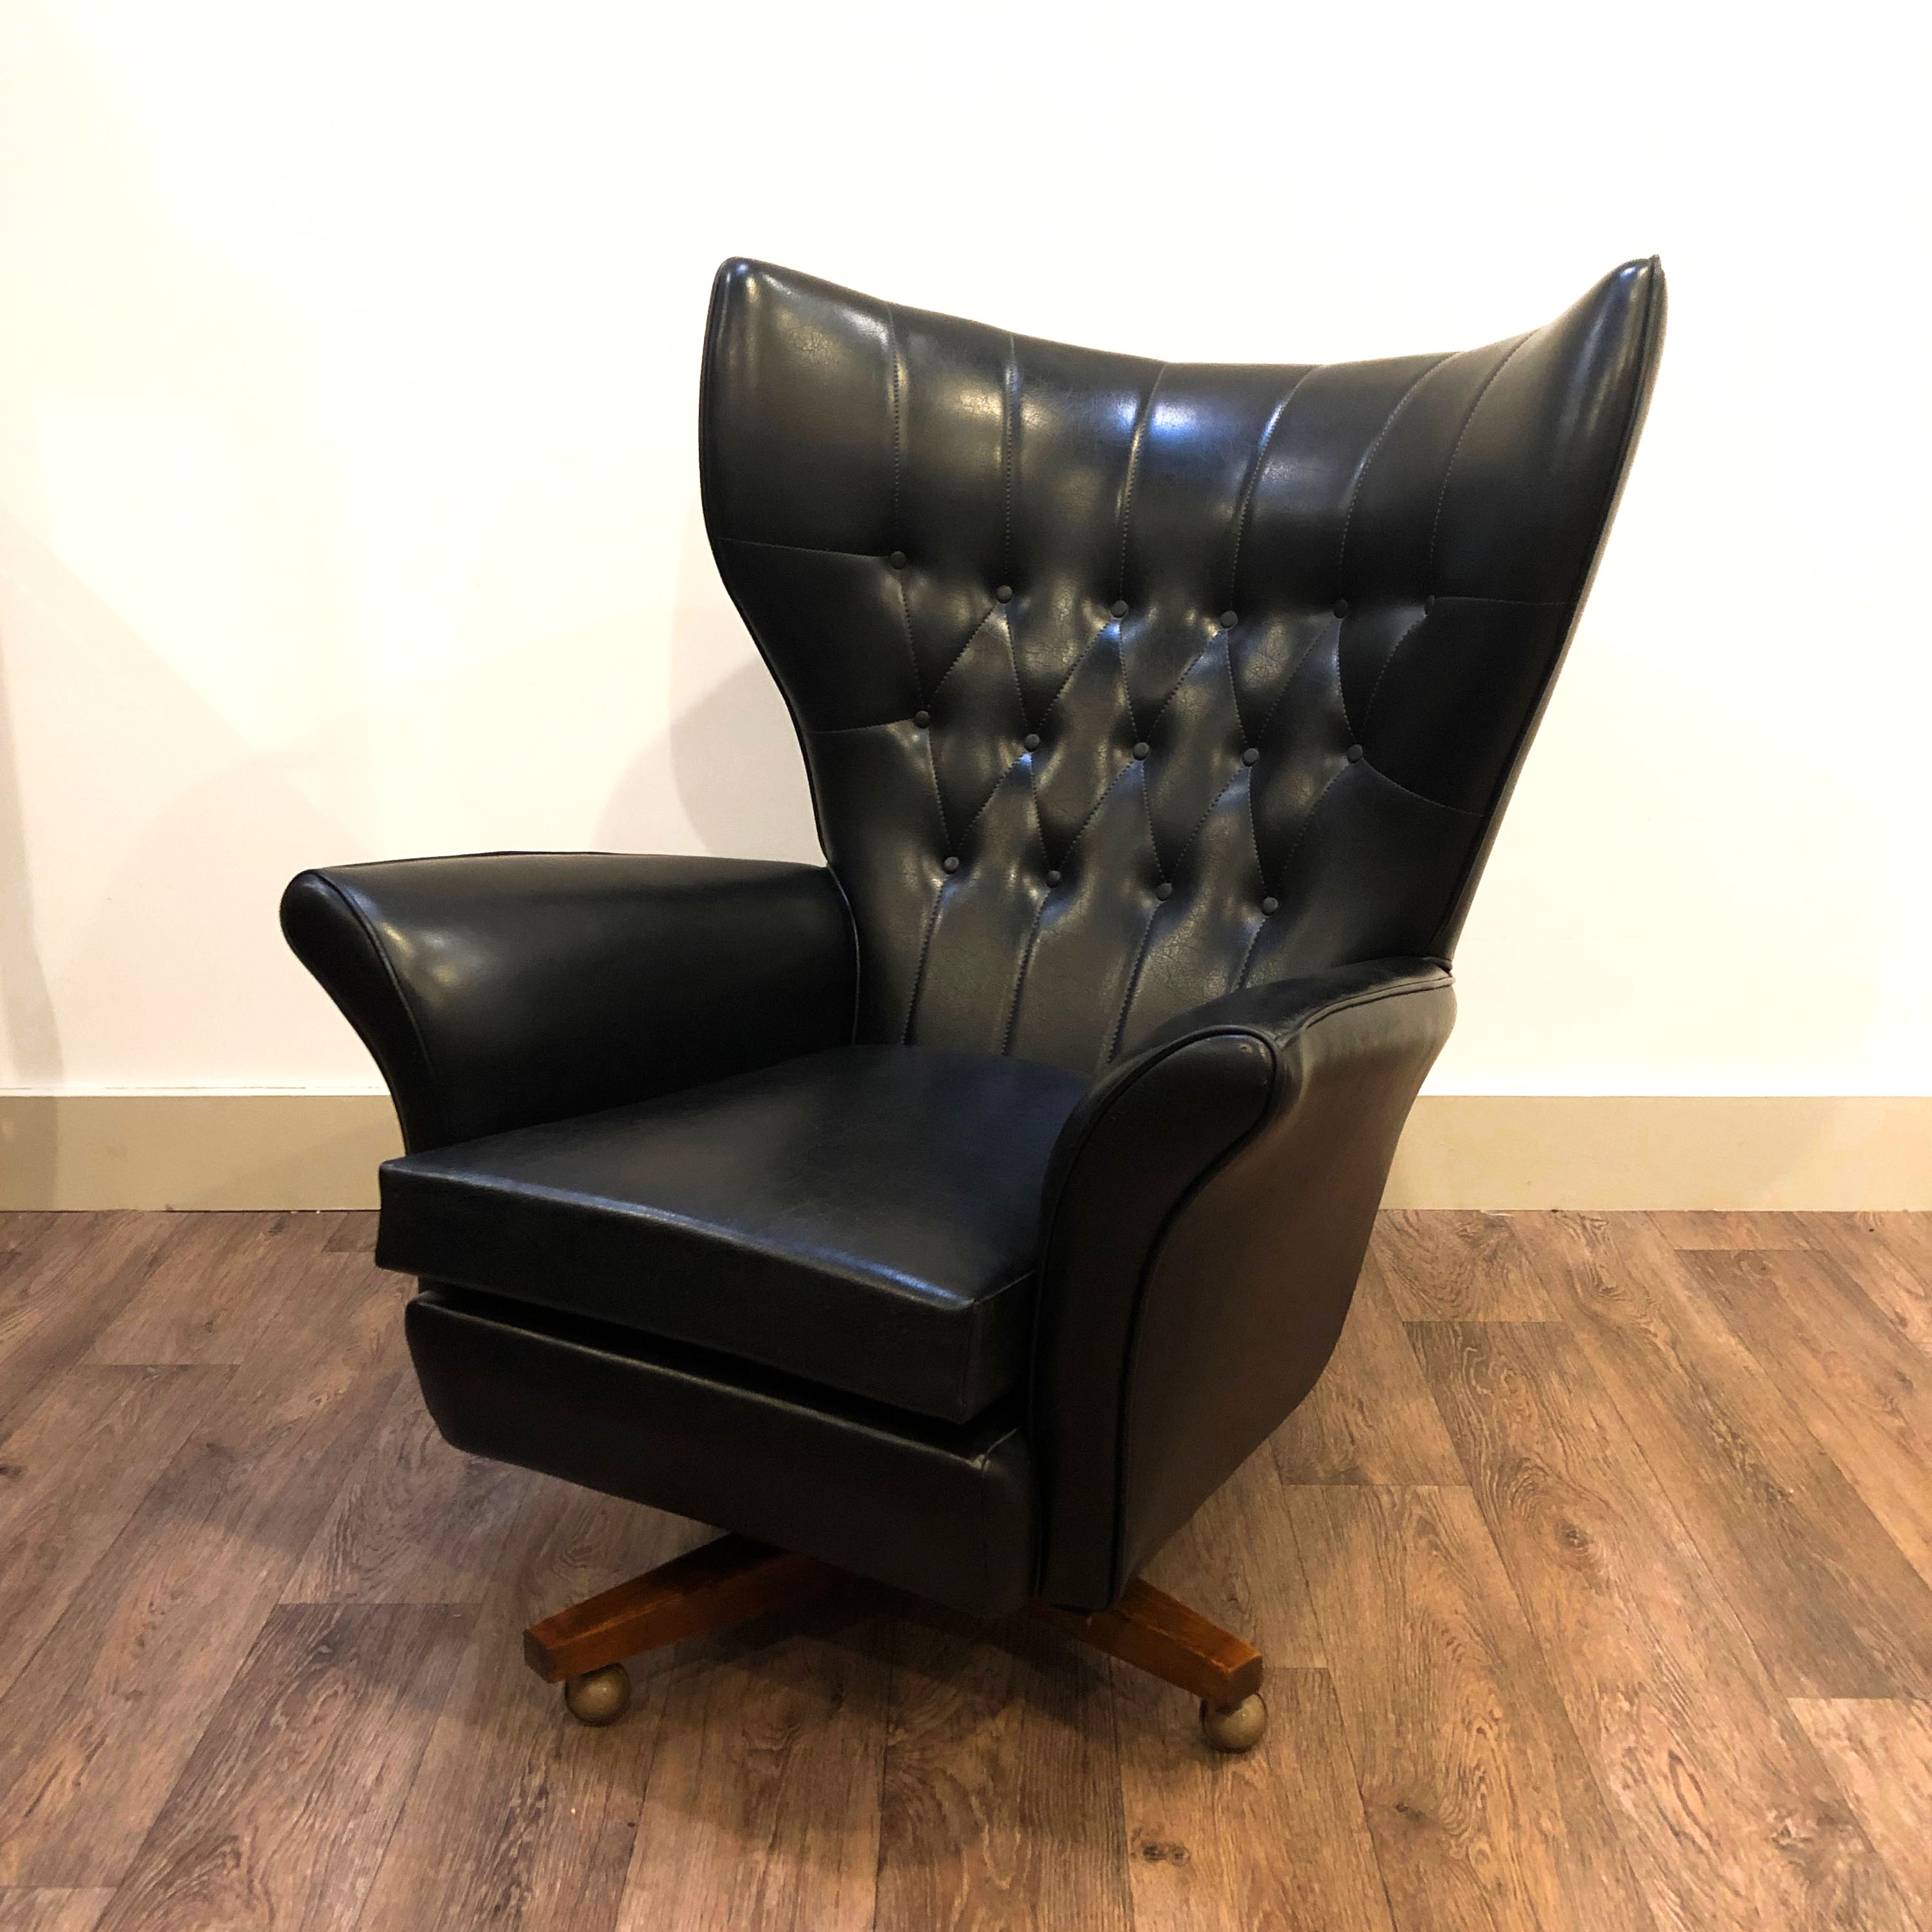 G-Plan 6250 Chair